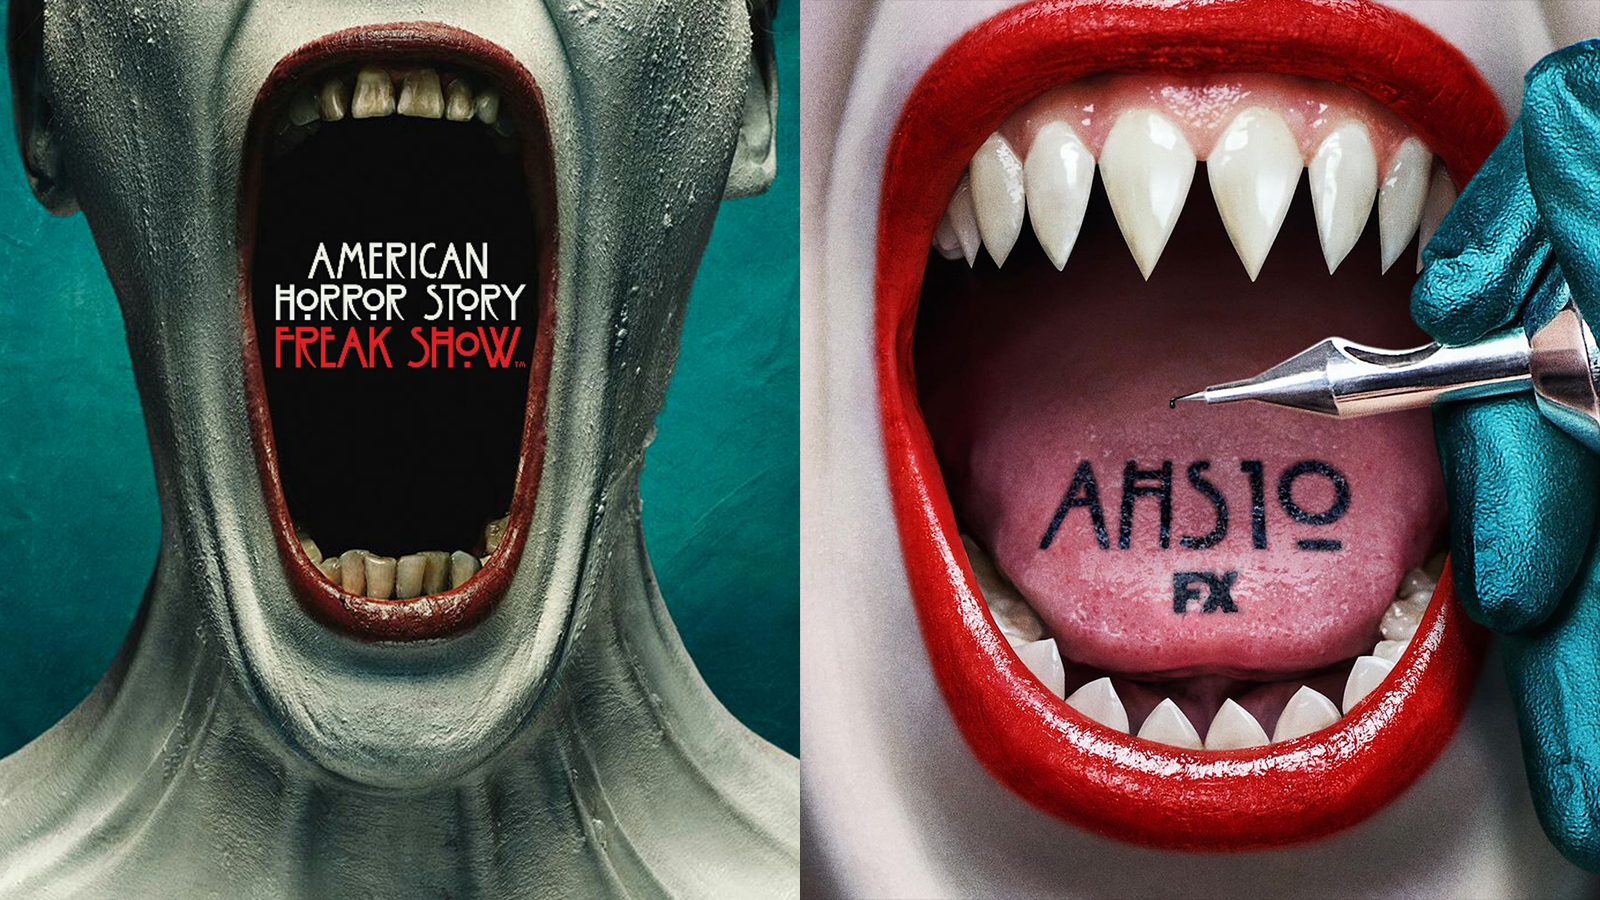 American Horror Story Season 10 and Freak Show posters